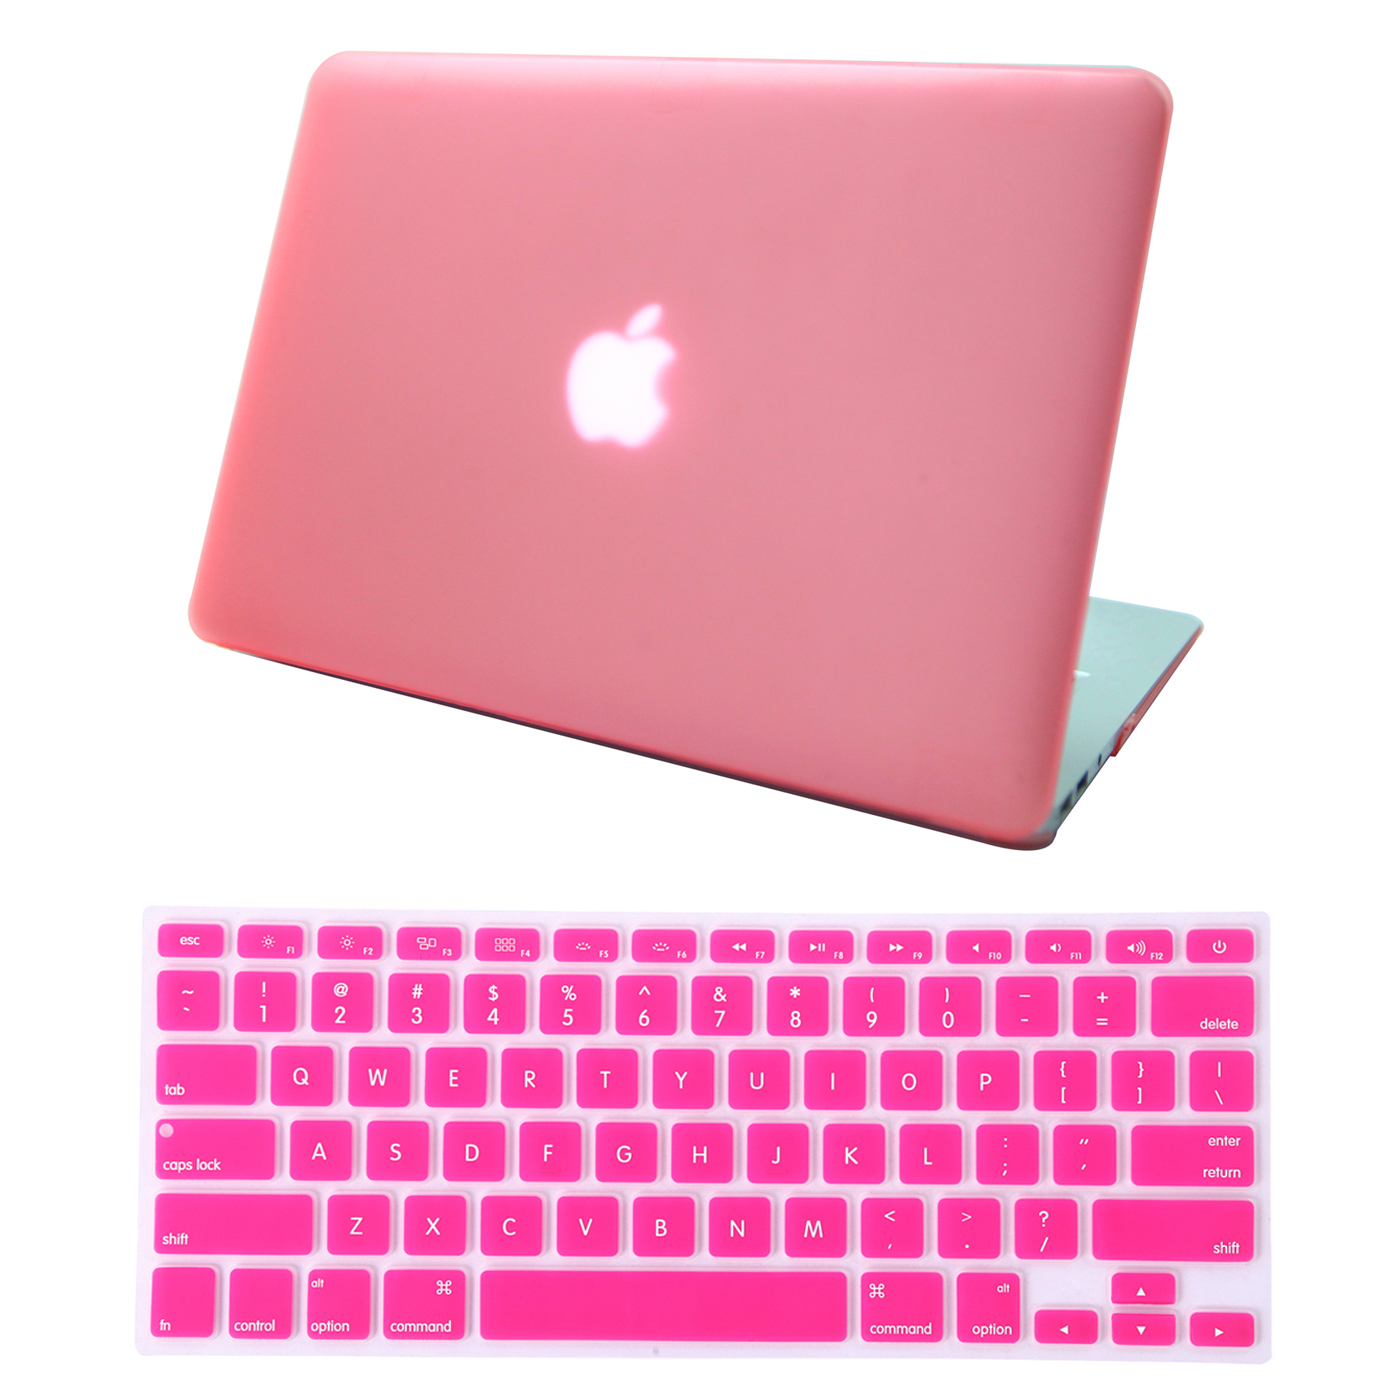 "HDE MacBook Air 13"" Case Hard Shell Cover Solid Rubberized Matte Plastic + Keyboard Skin - Fits 13.3"" Apple Mac Air Notebook Model A1369 / A1466 (Pink)"